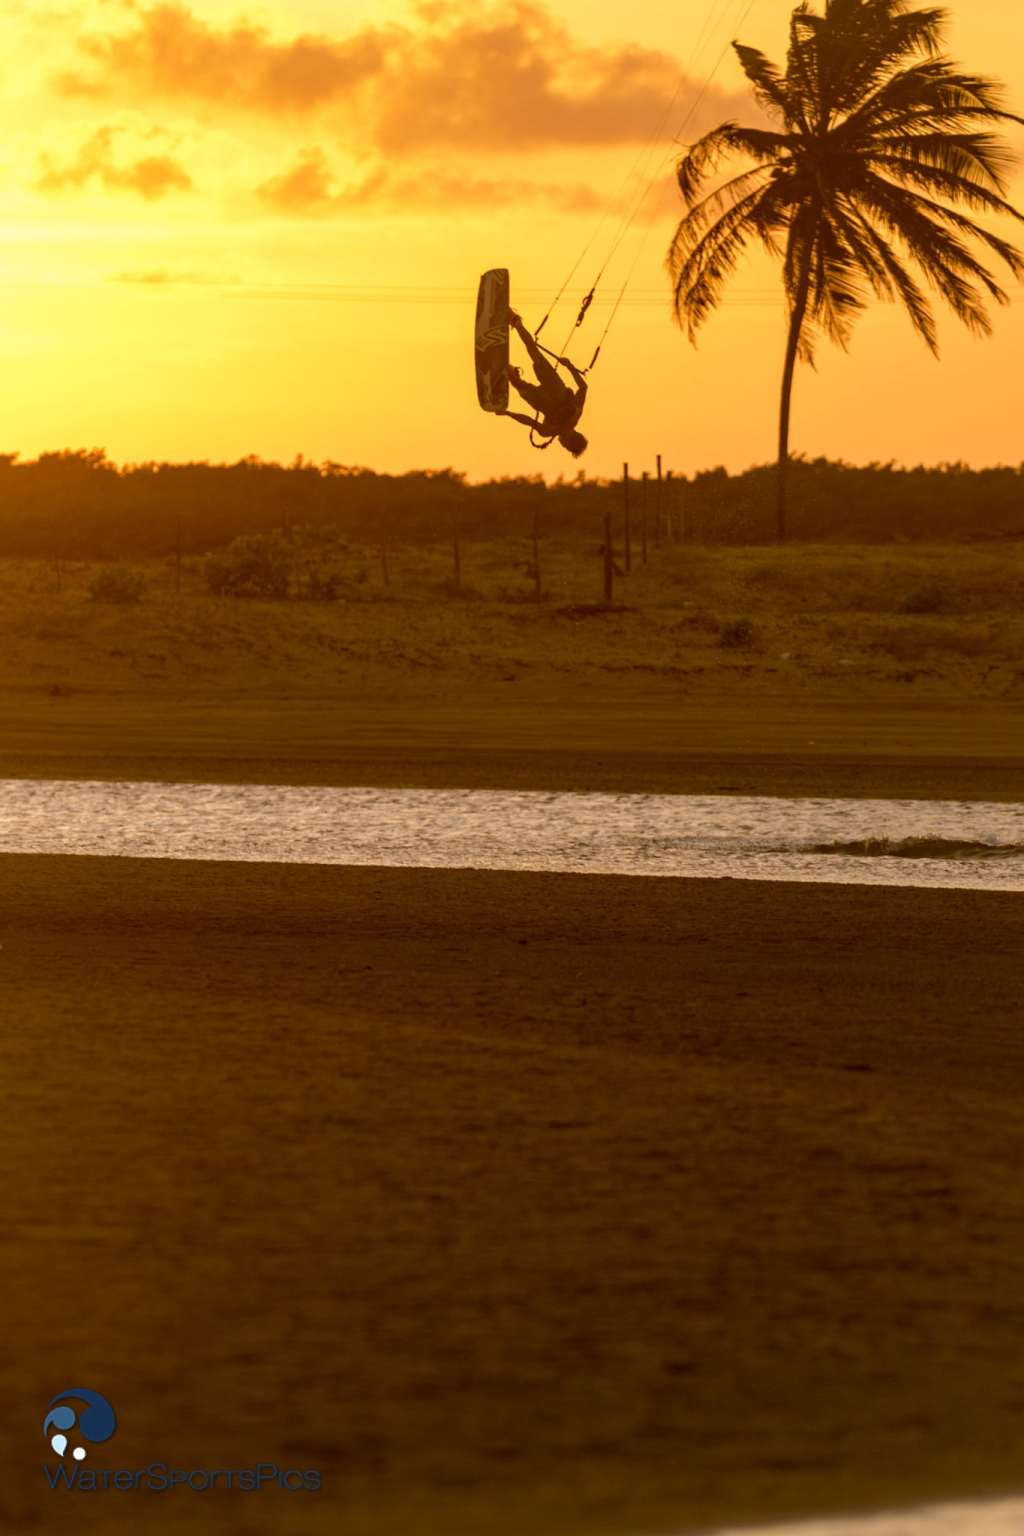 Flash session with Dylan van der Meij (Flysurfer/Jobe/Lip/Lifely/Versus) in Barra do Rio, Brazil on 14 November 2014